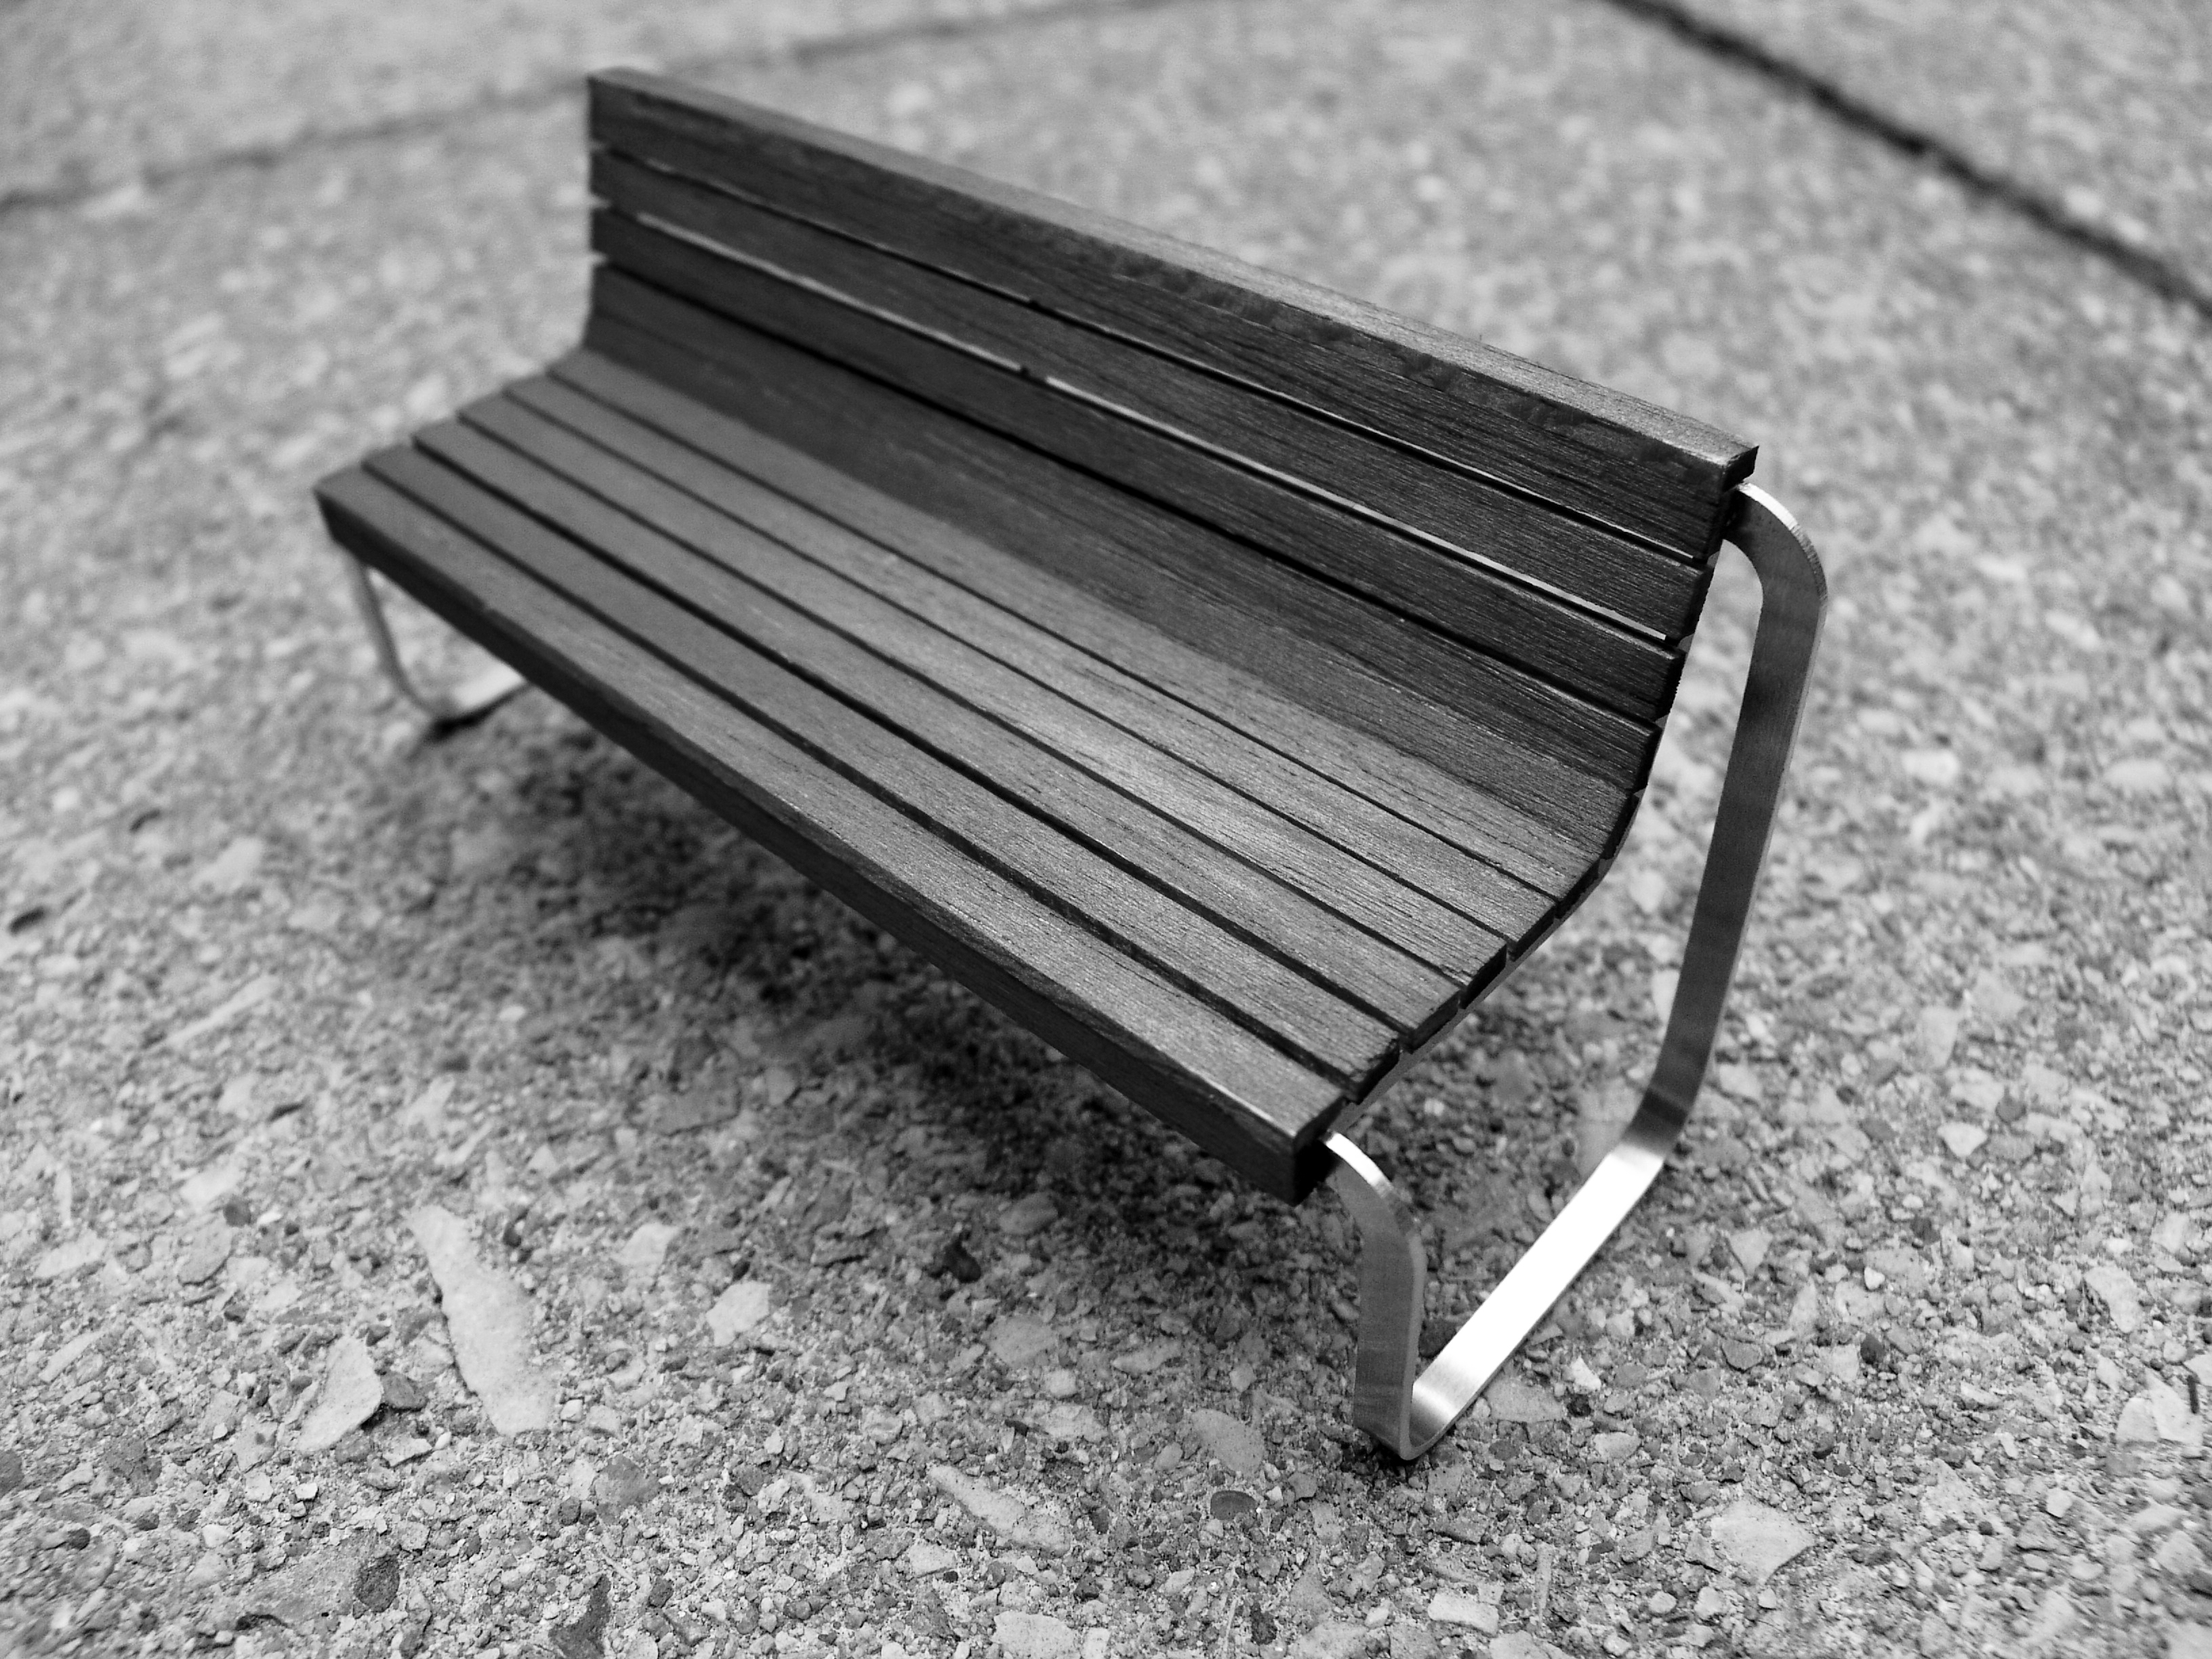 Scale model 10 urban furniture by andrey andreev at Scale model furniture